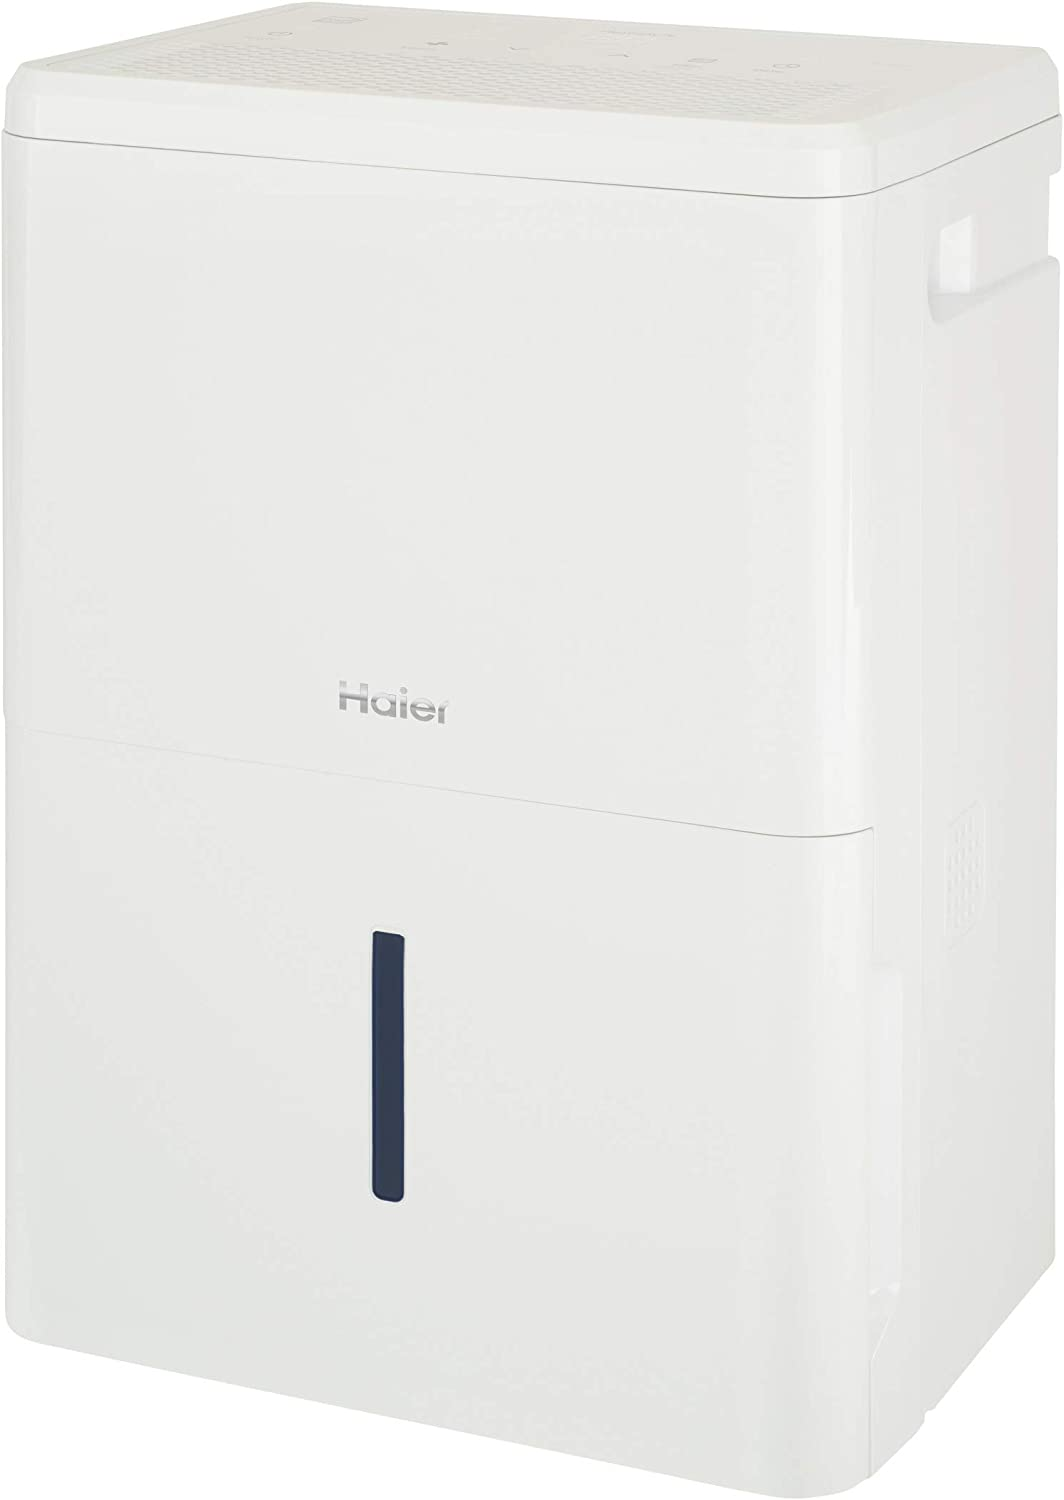 Haier Energy Star 50 Pint Dehumidifier for Home or Basement with Built-in Pump, Large, White